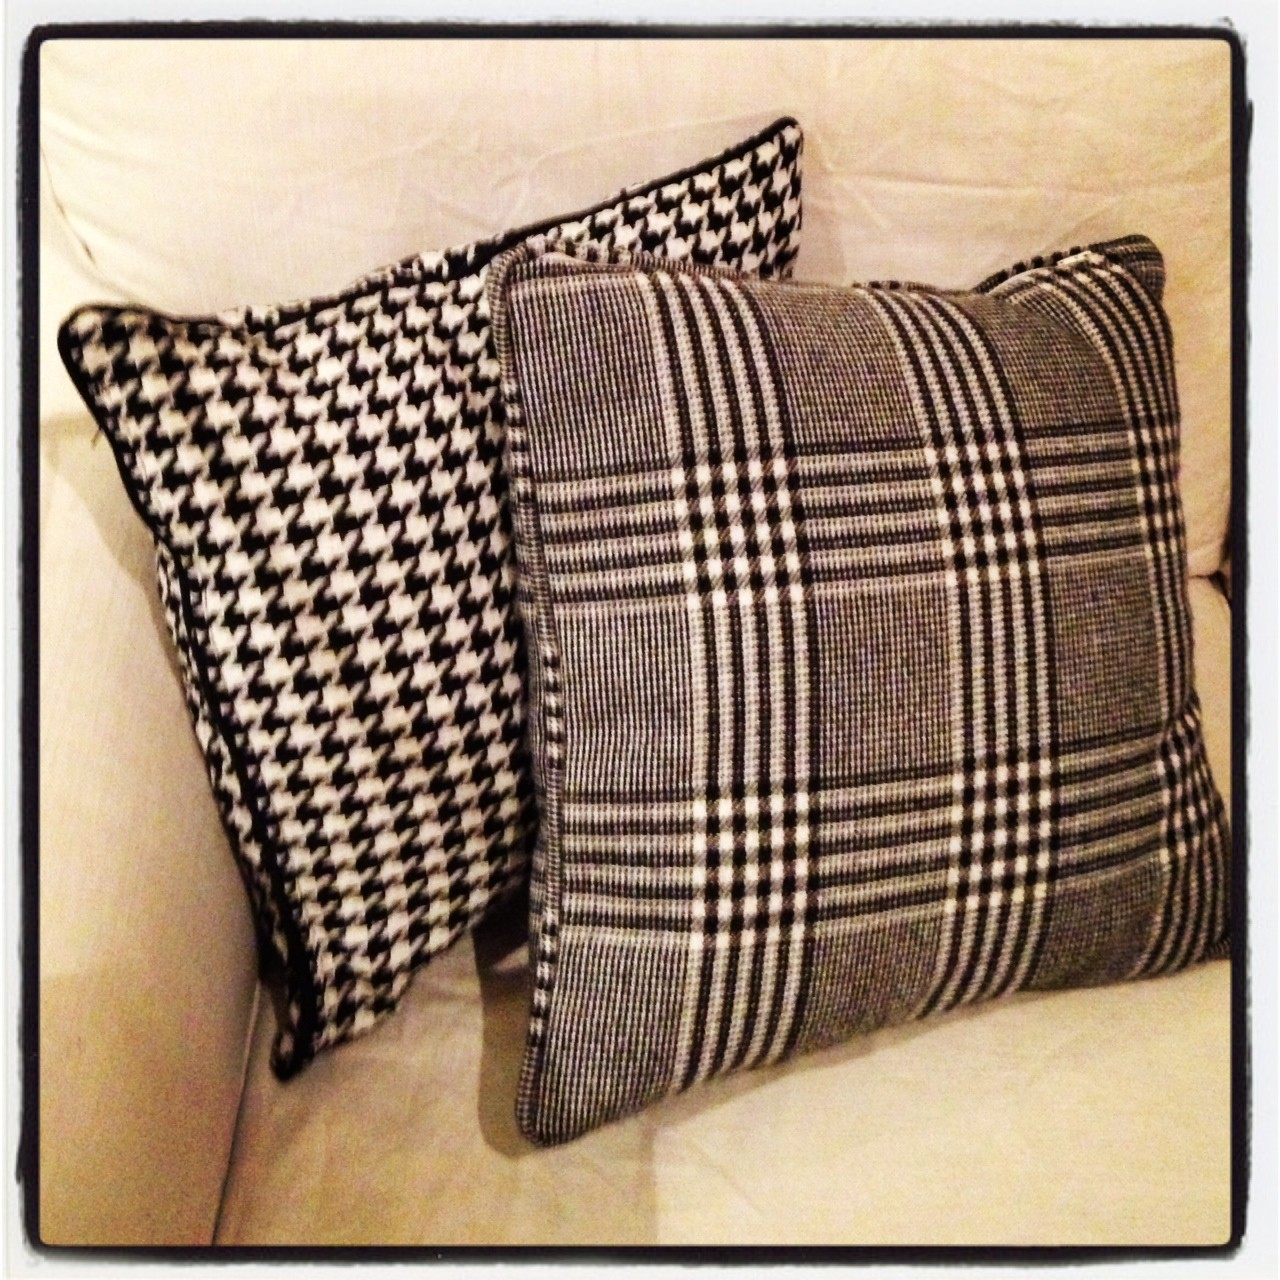 Bespoke suits and Cushions too!